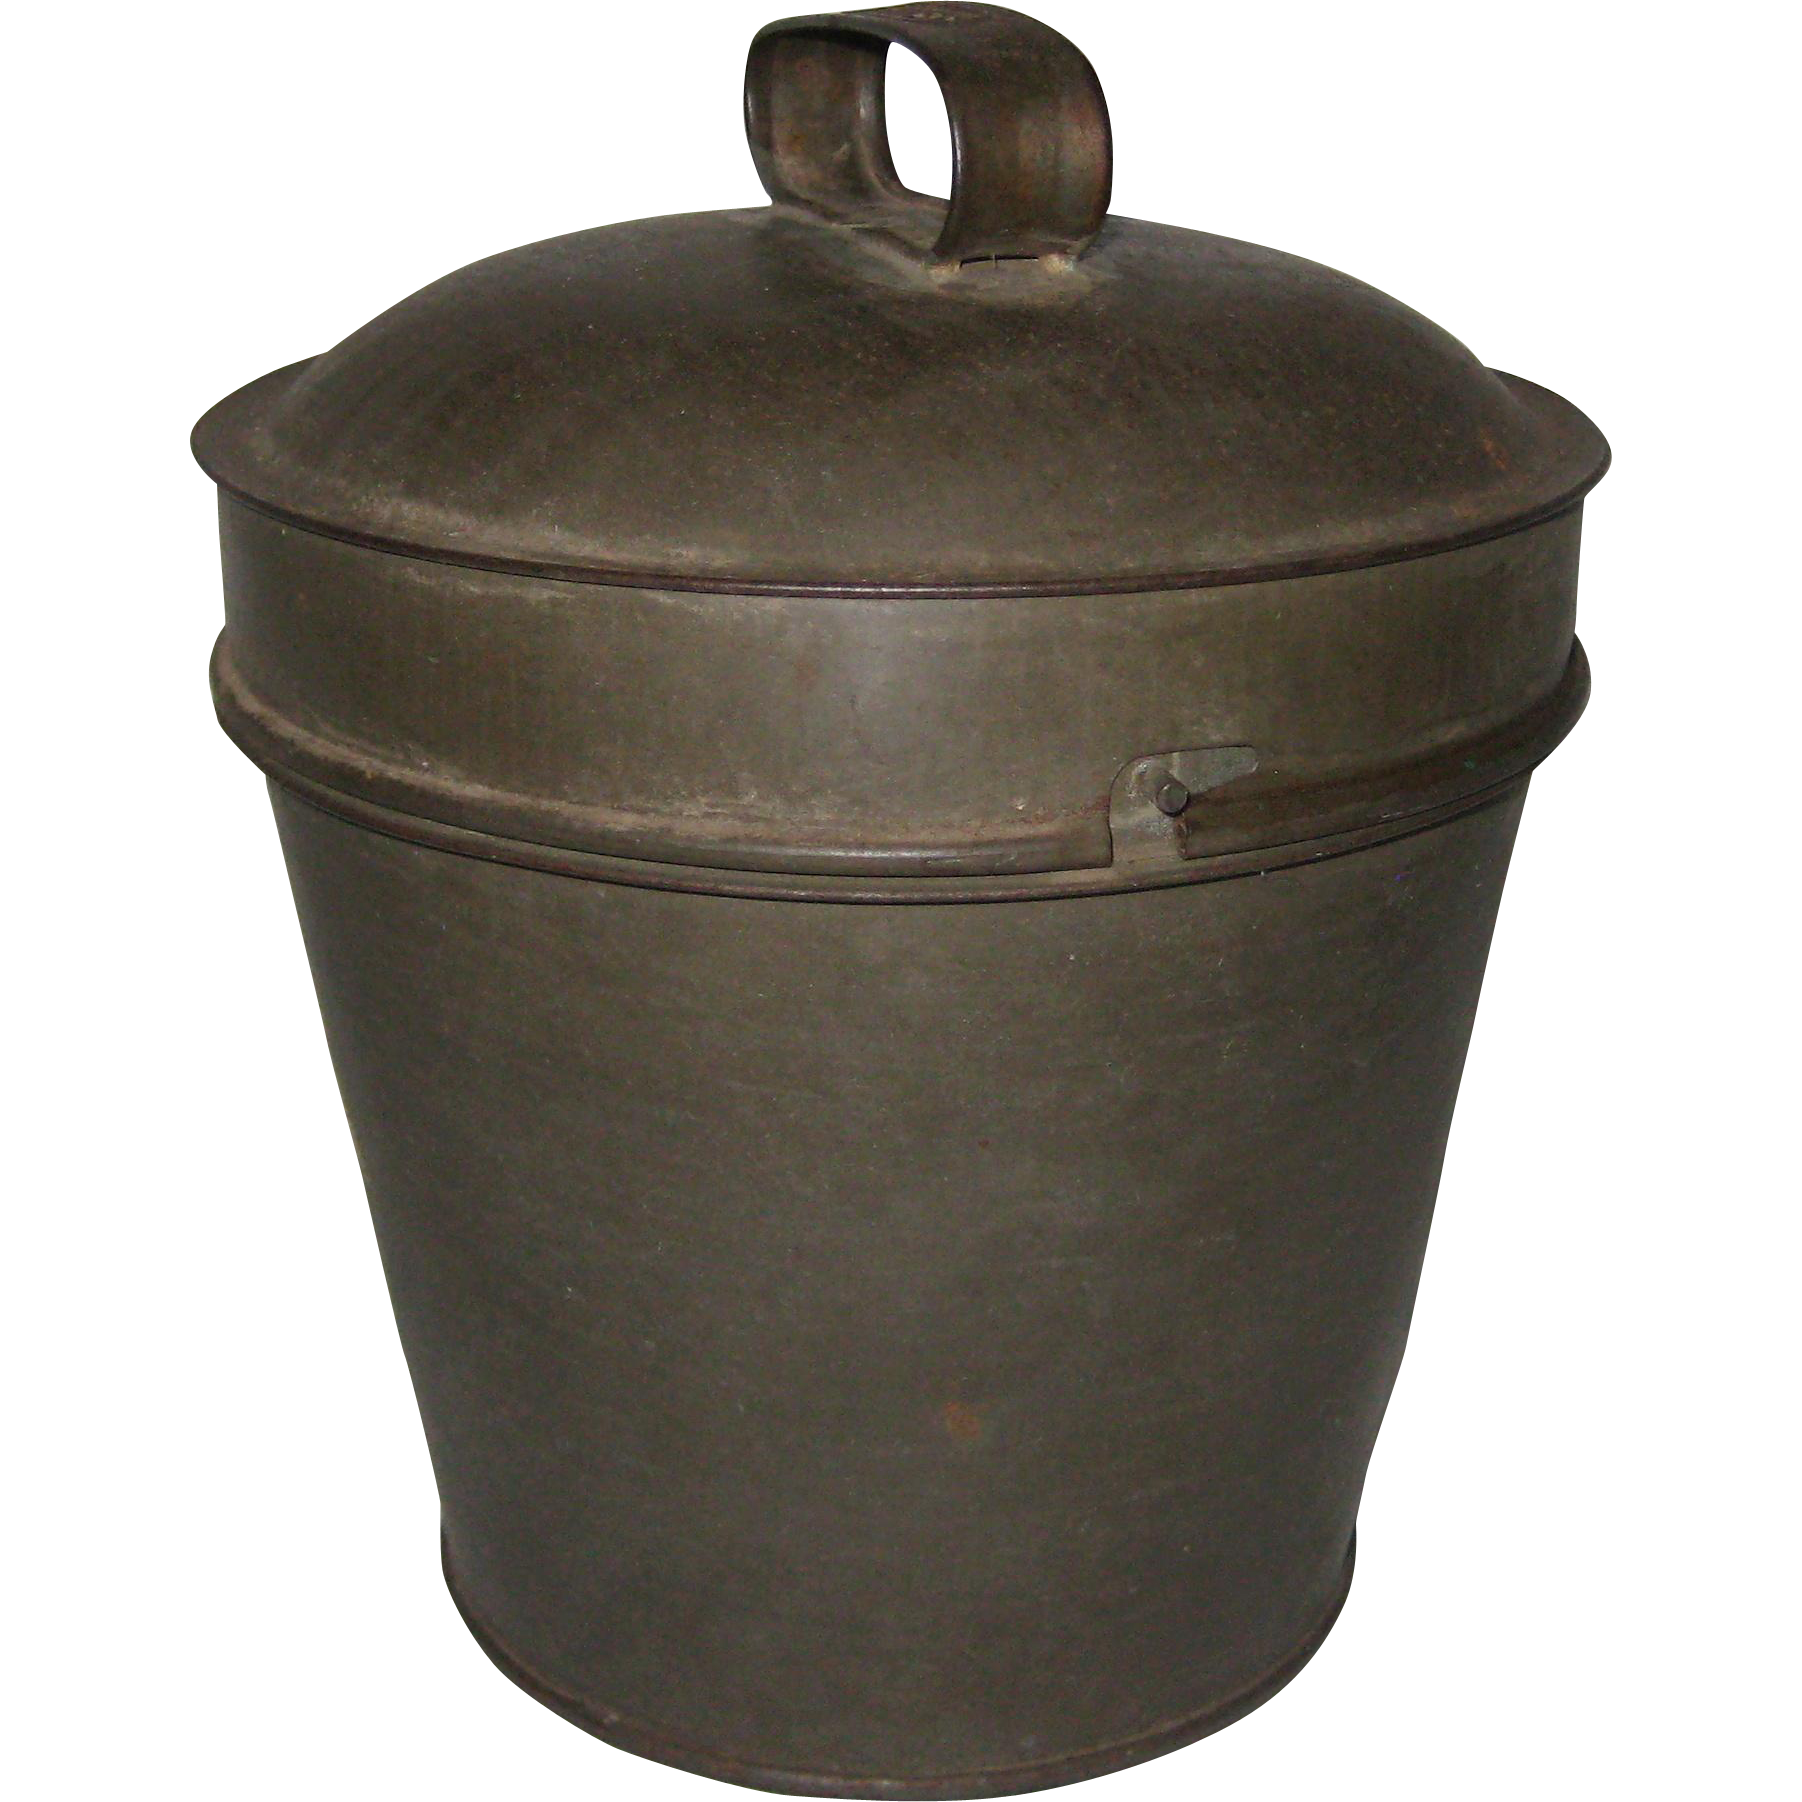 Fries Steamed Pudding Mold - Tinned